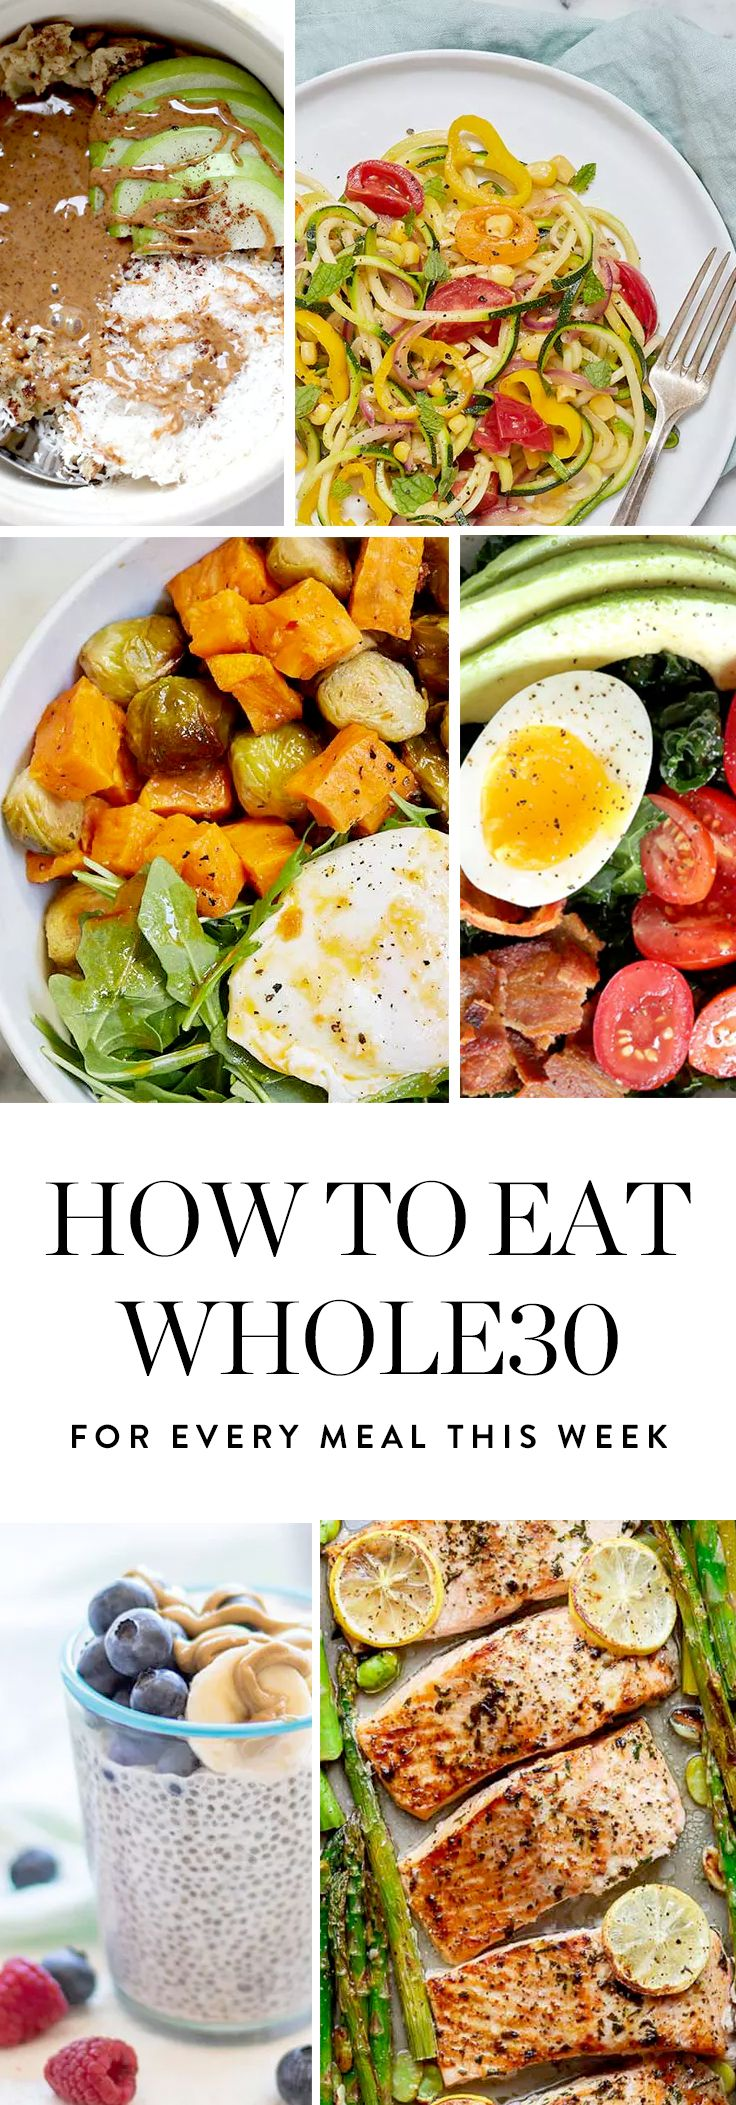 Presenting a week's worth of delicious Whole30 ideas for breakfast, lunch and dinner.